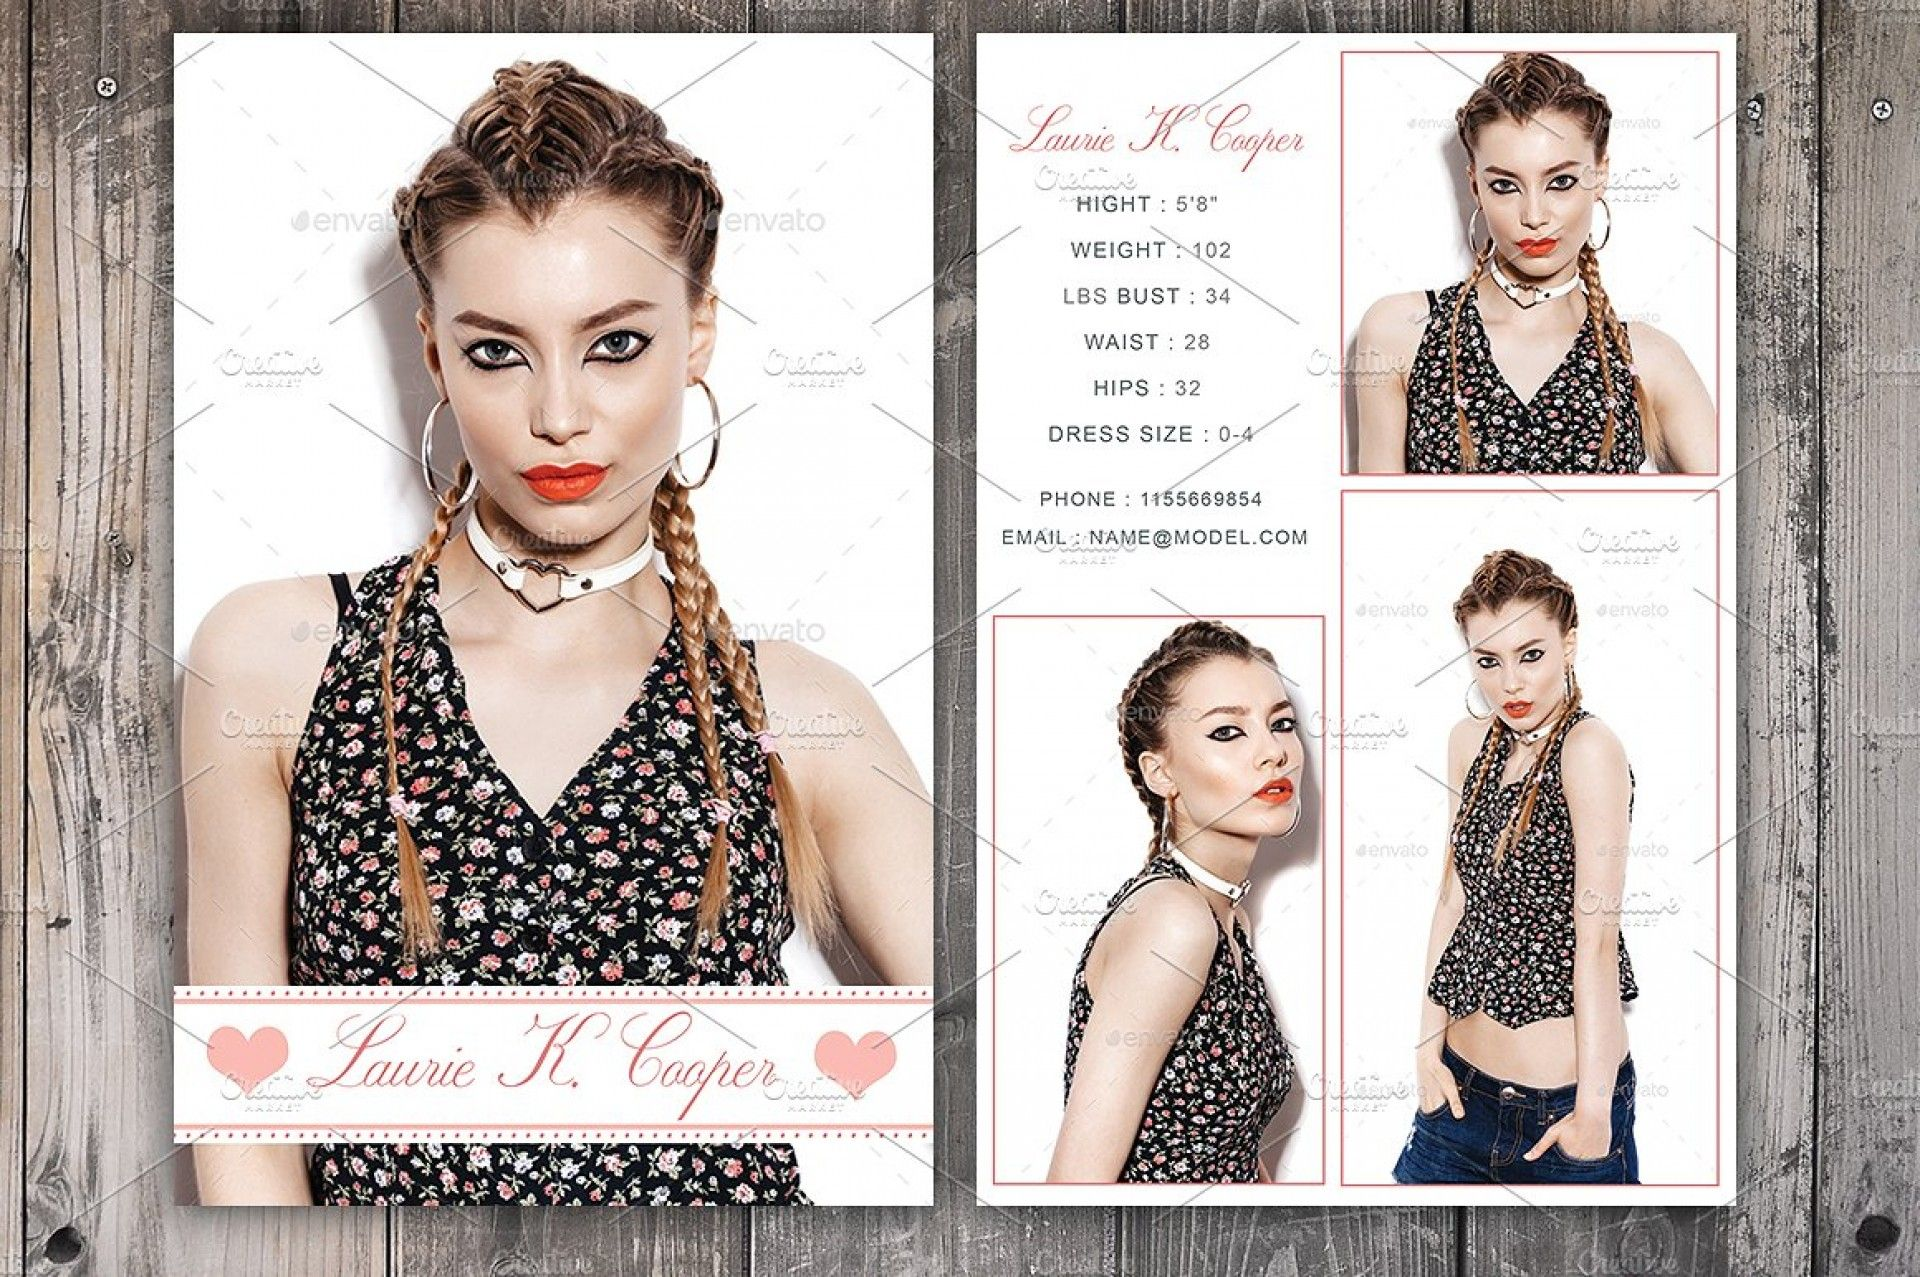 The Amazing Free Model Comp Card Templates C Punkt Inside Download Comp Card Template Digital Imagery Belo Model Comp Card Card Templates Free Card Templates